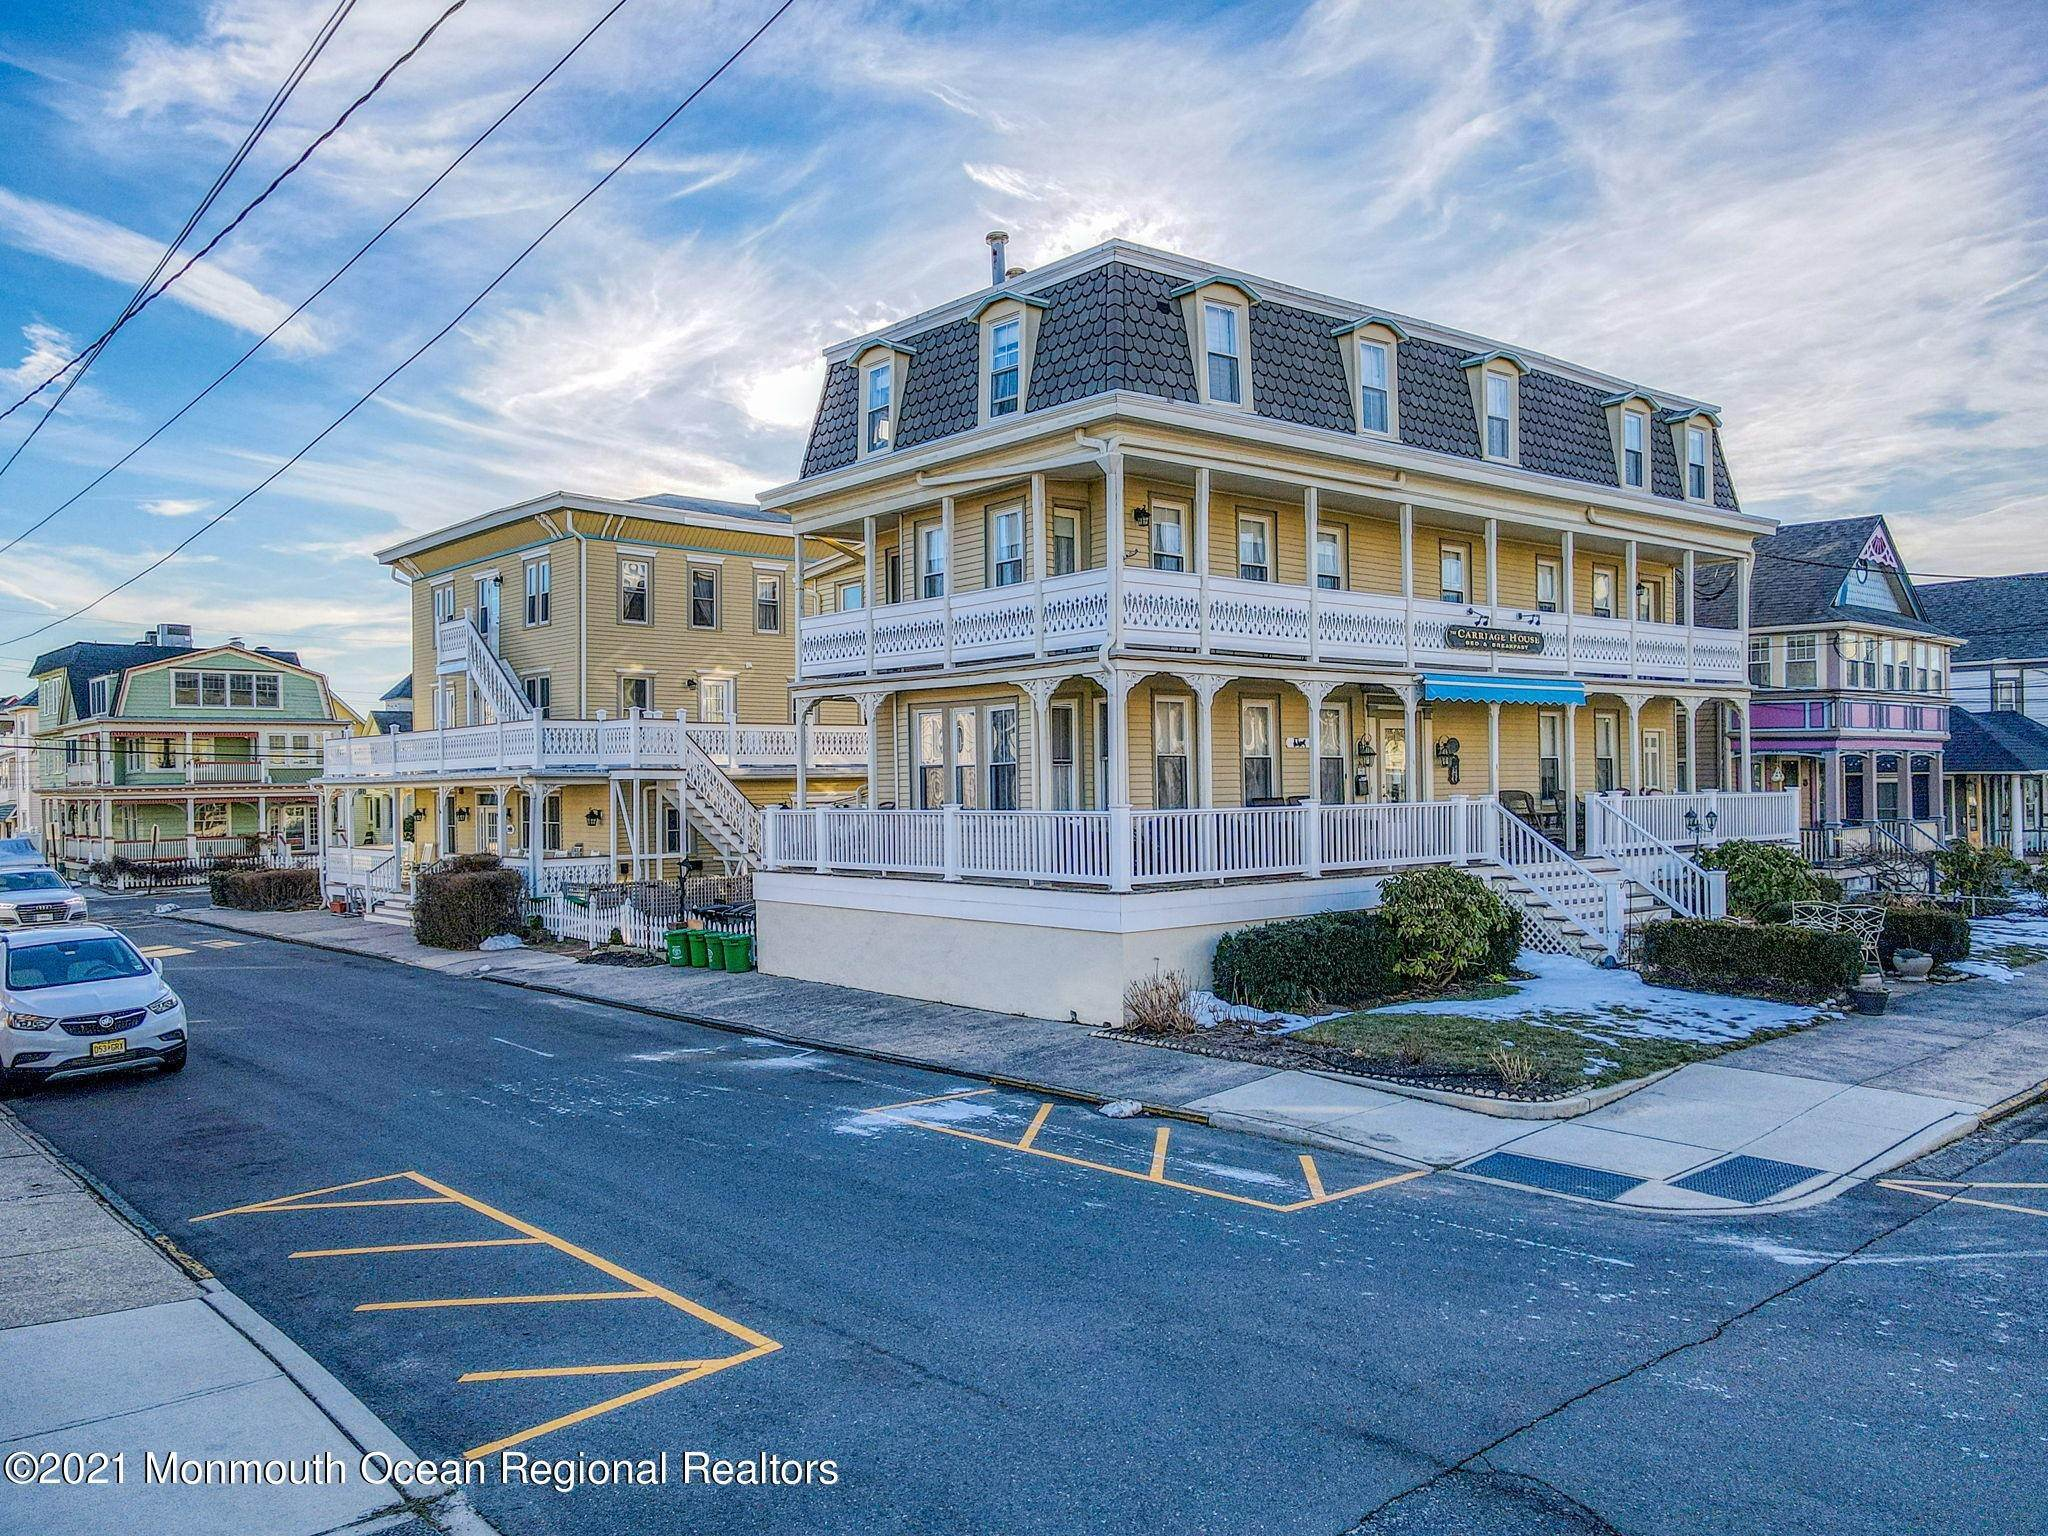 Commercial for Sale at 18 Heck Avenue Ocean Grove, New Jersey 07756 United States